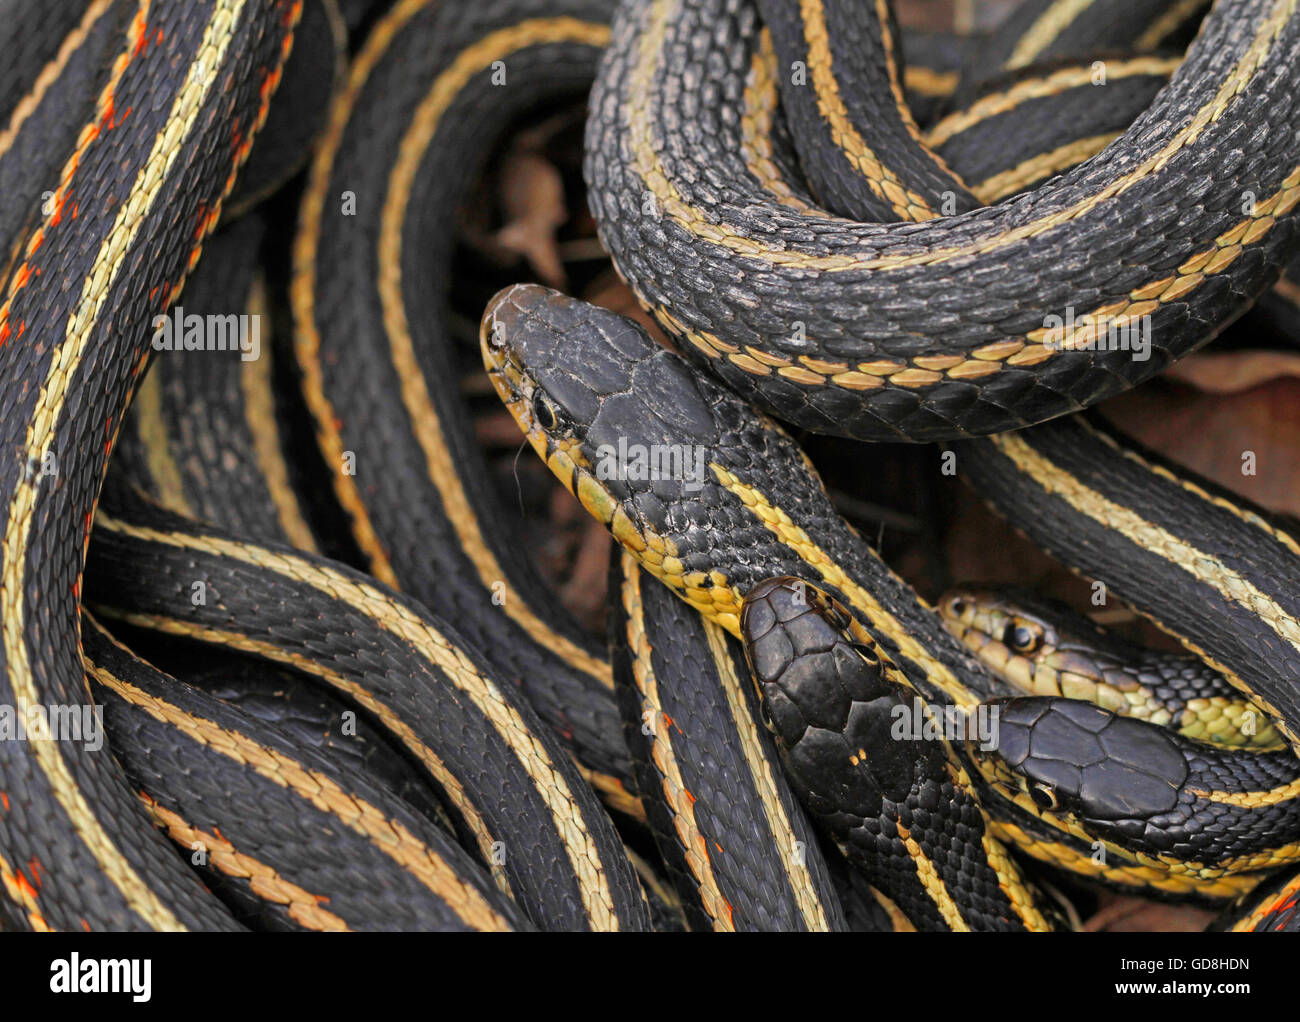 Group of red sided garter snake Thamnophis sirtalis parietalis mating in Narcisse, Manitoba, Canada. Stock Photo